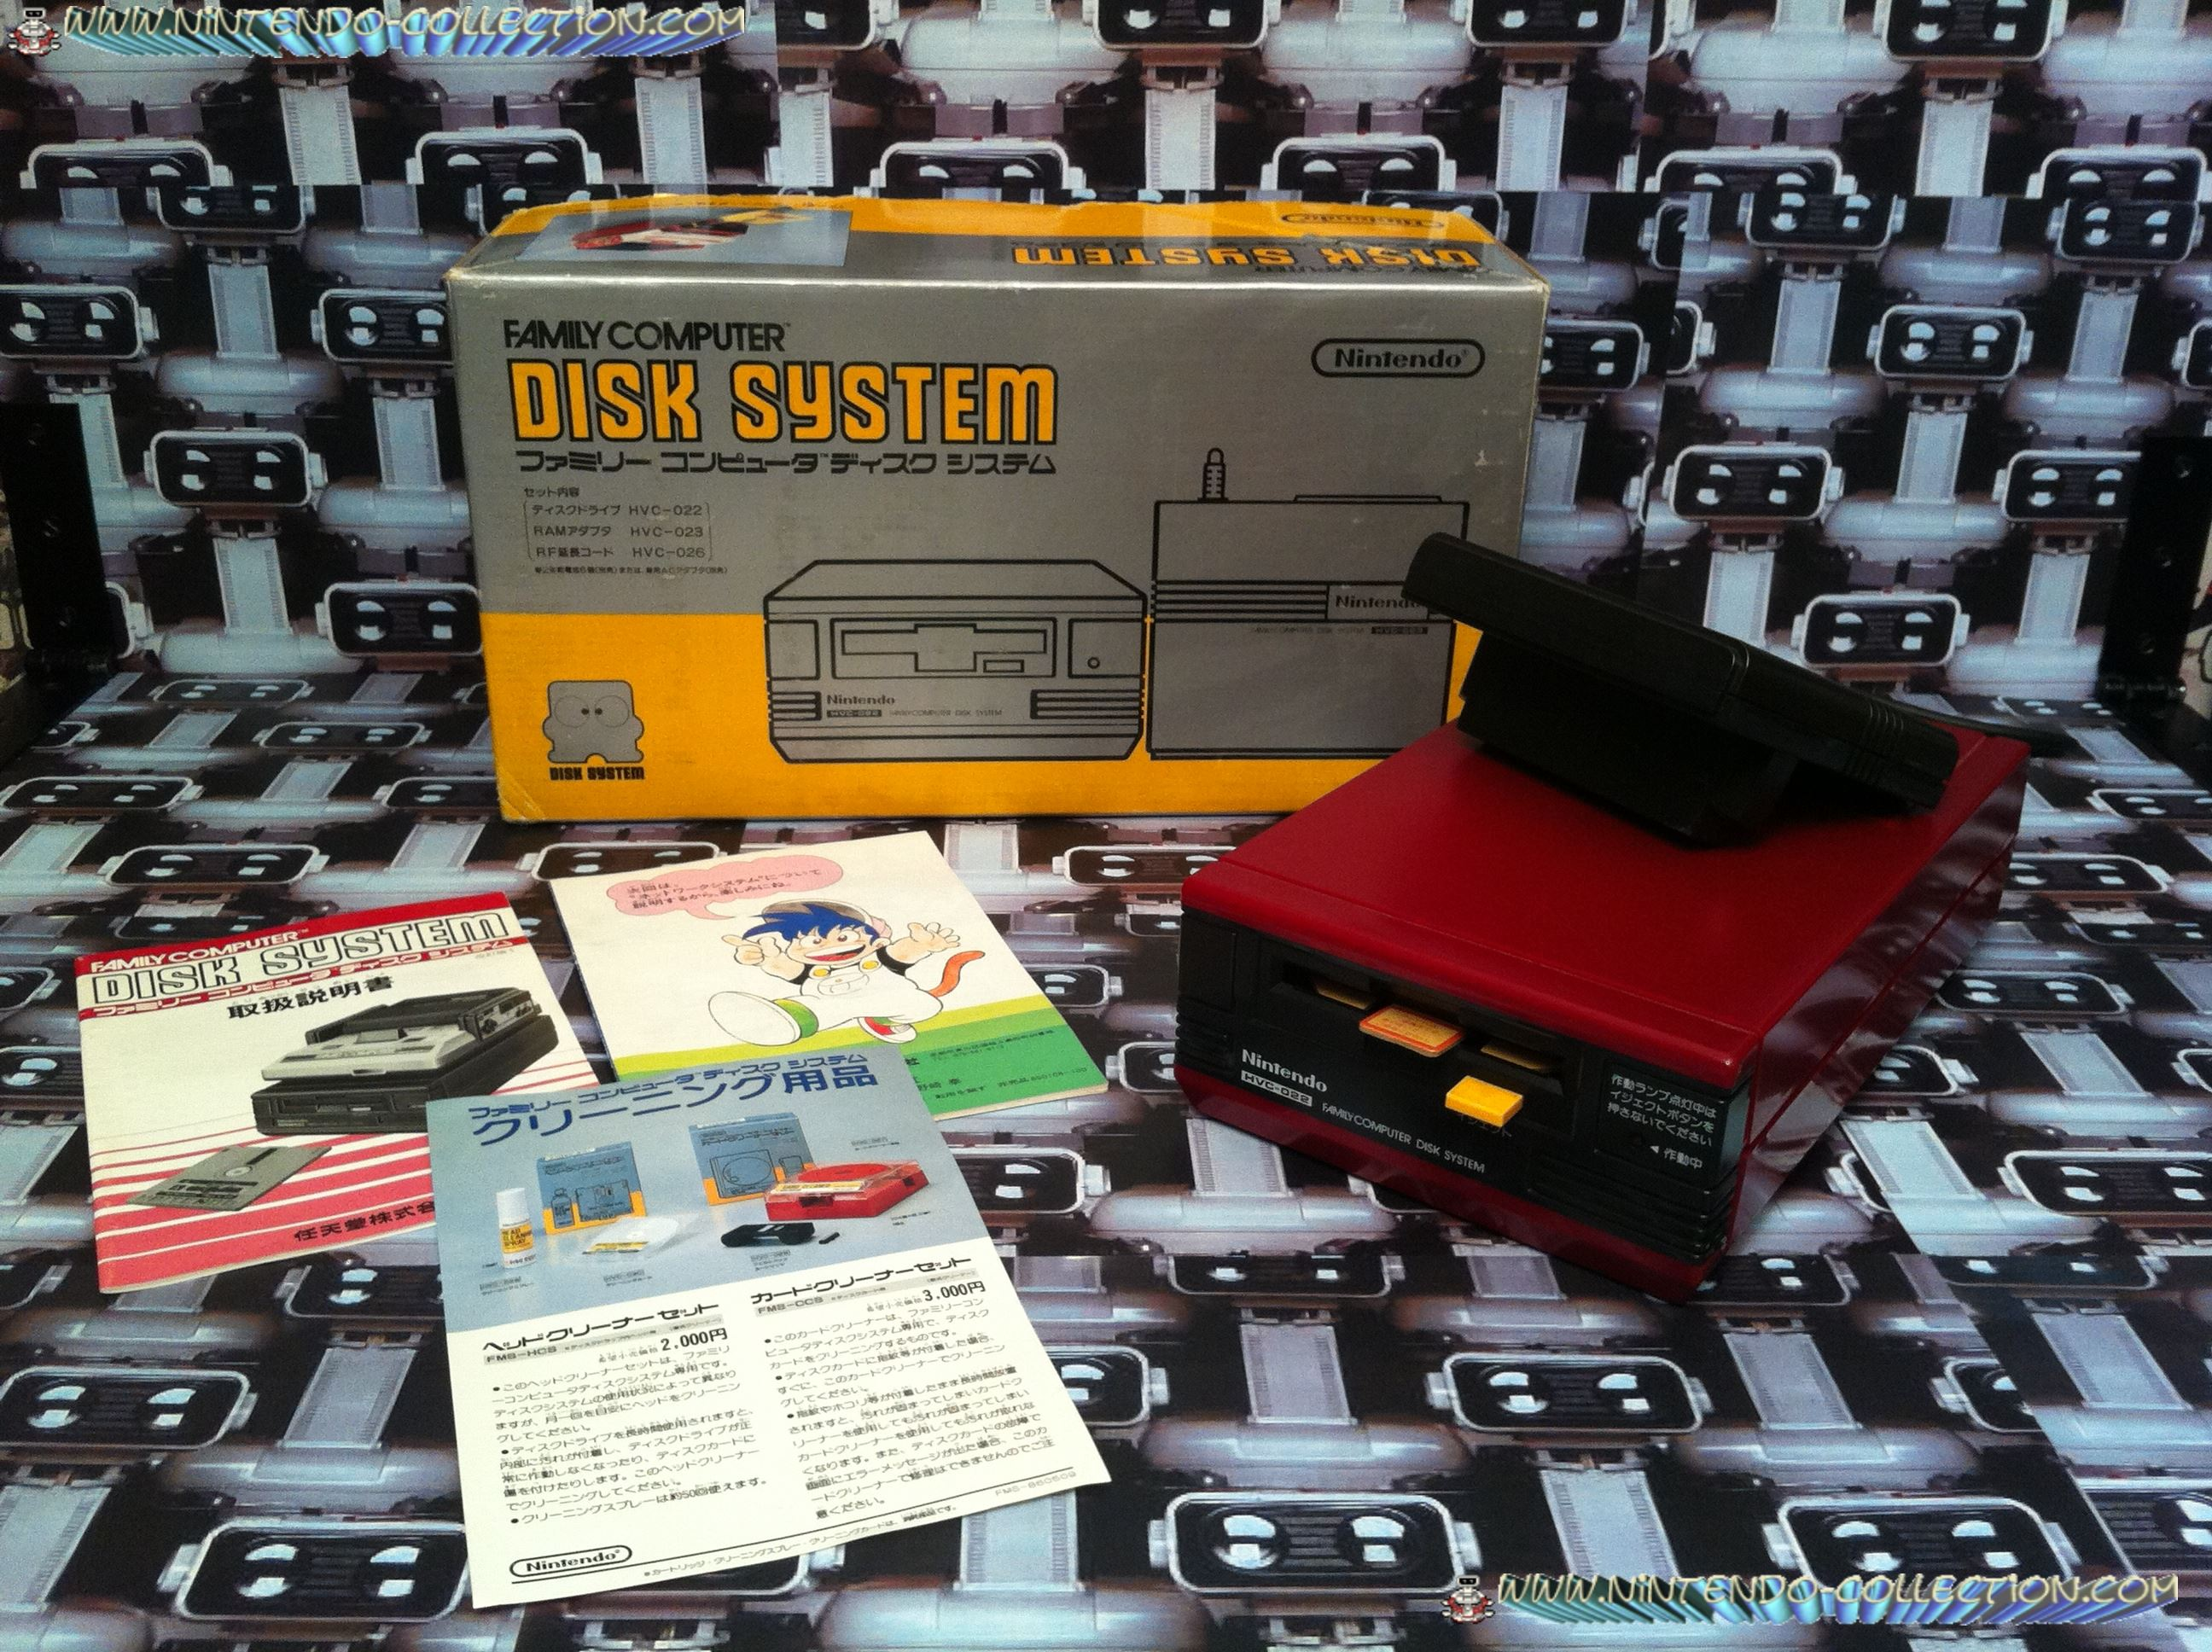 www.nintendo-collection.com - Famicom Disk System